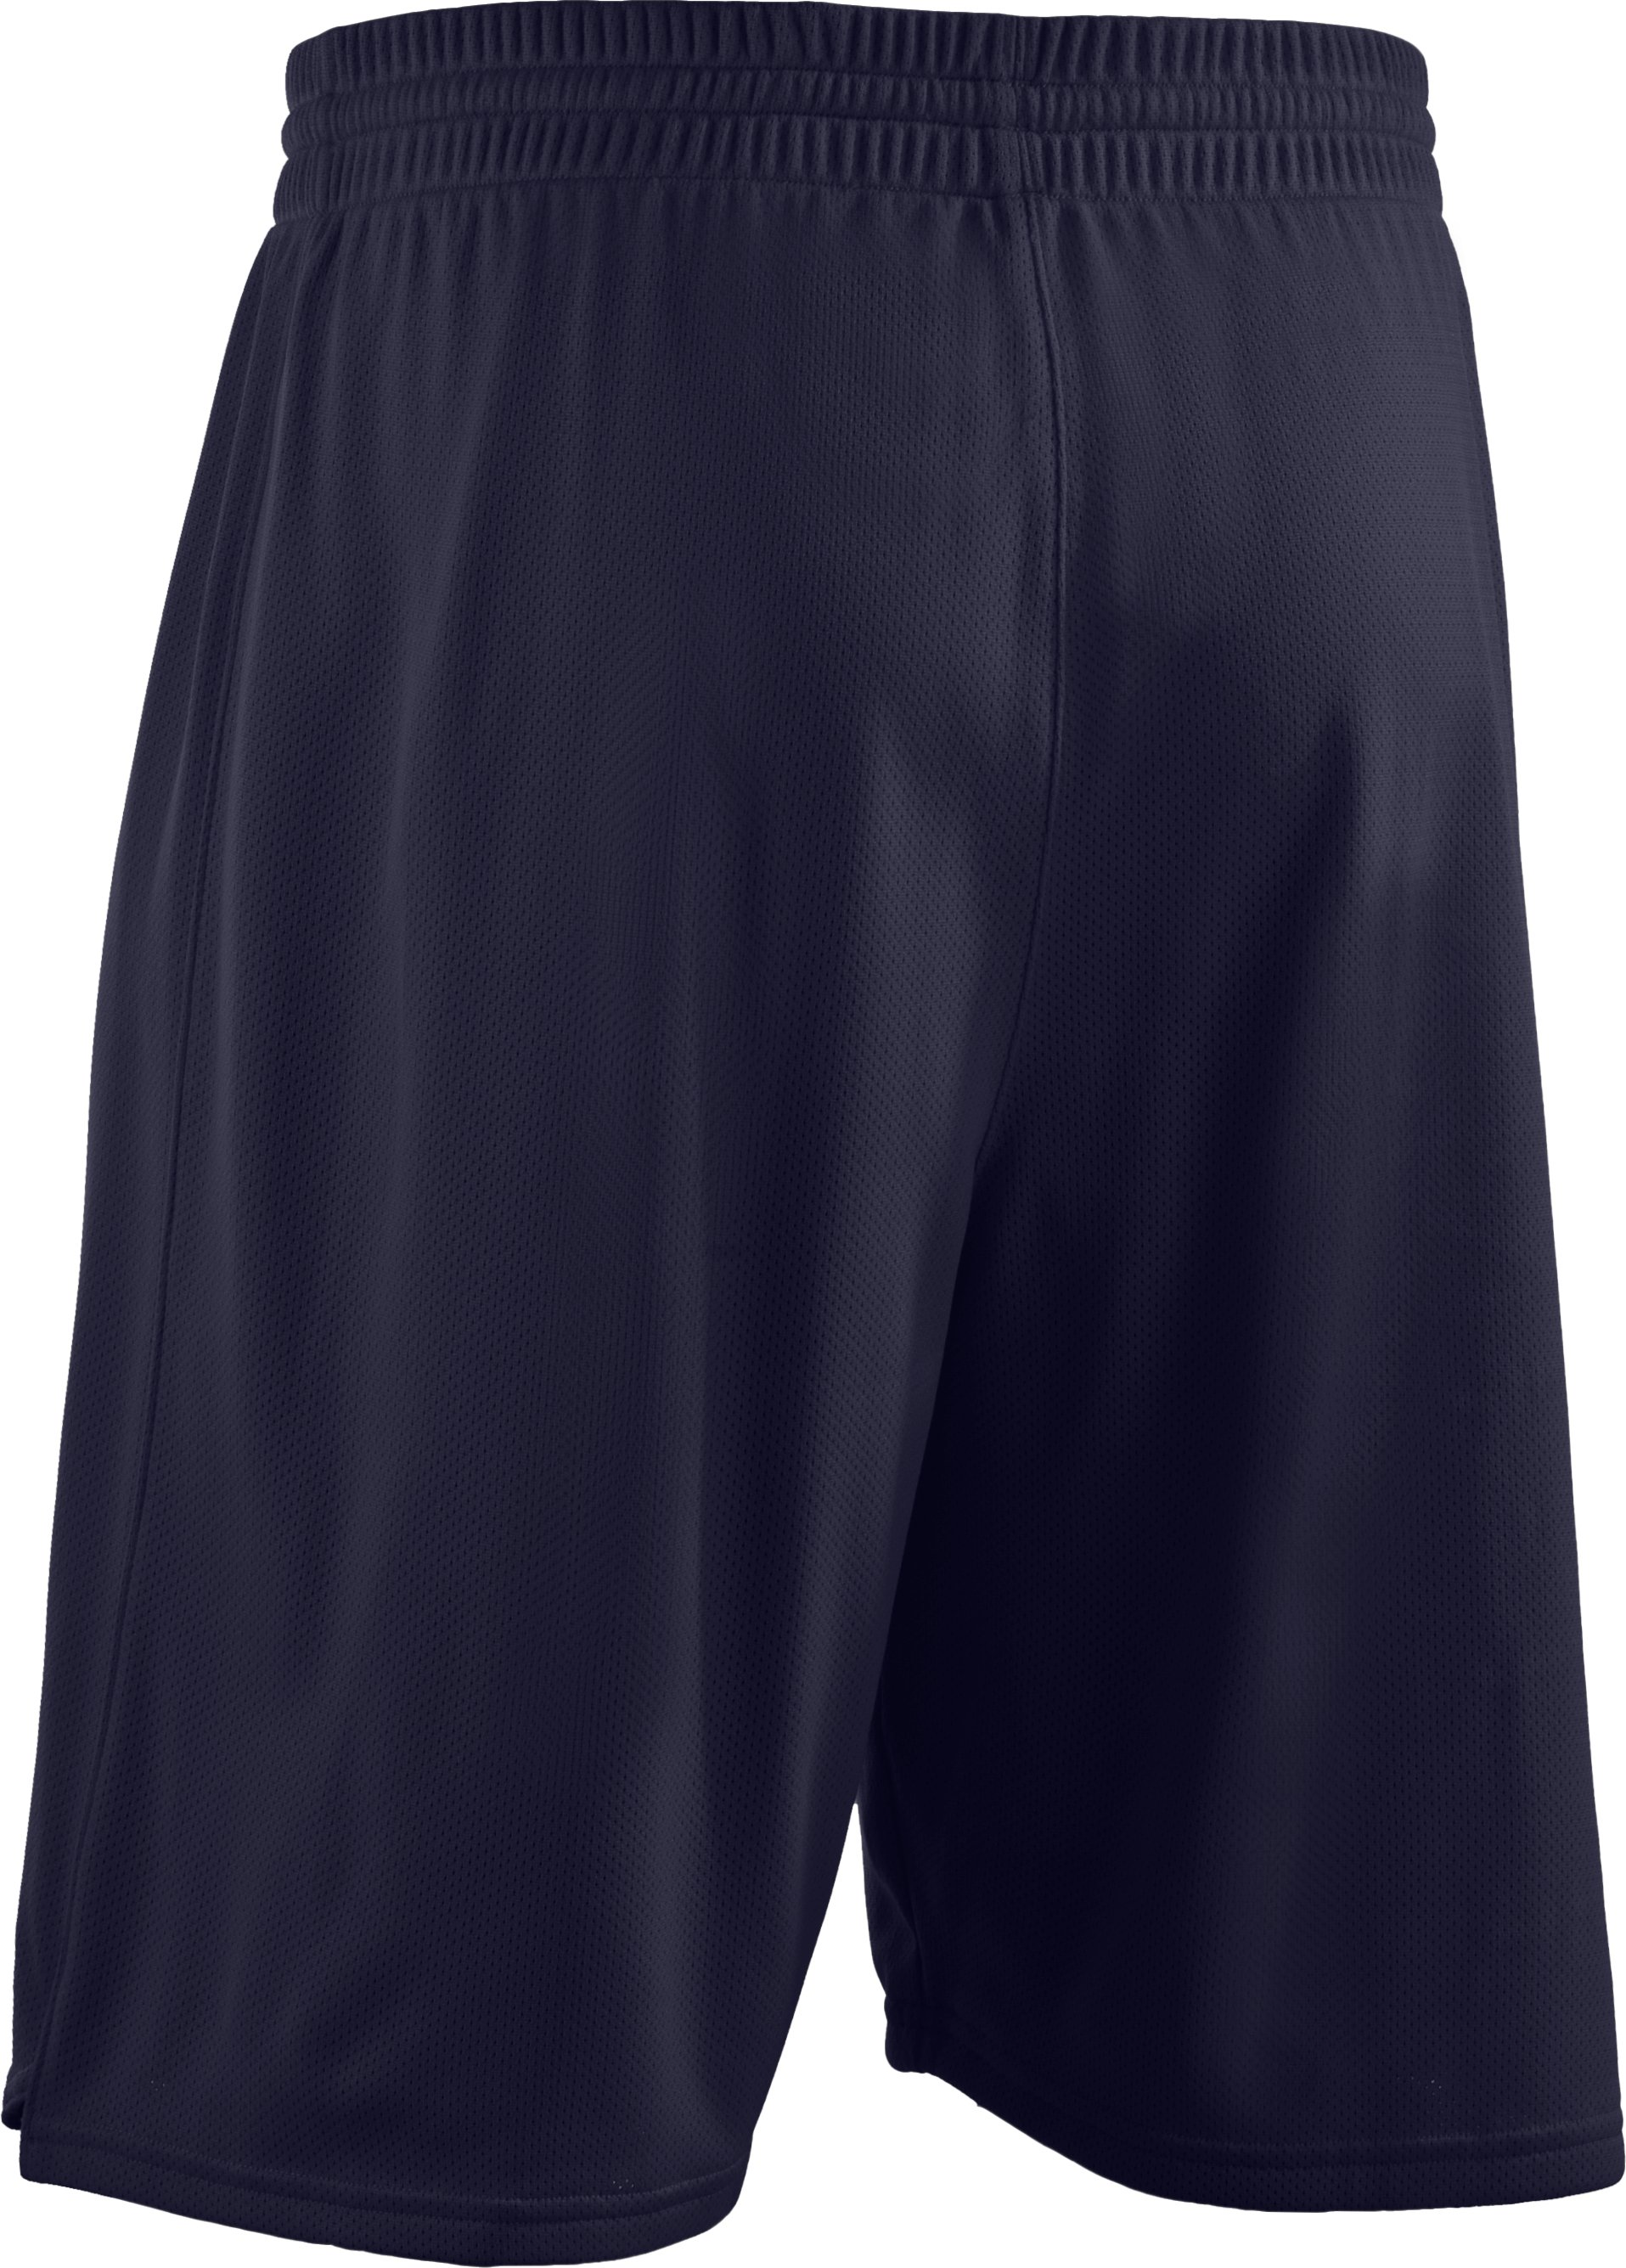 "Men's Dominate 10"" Basketball Shorts, Midnight Navy, undefined"